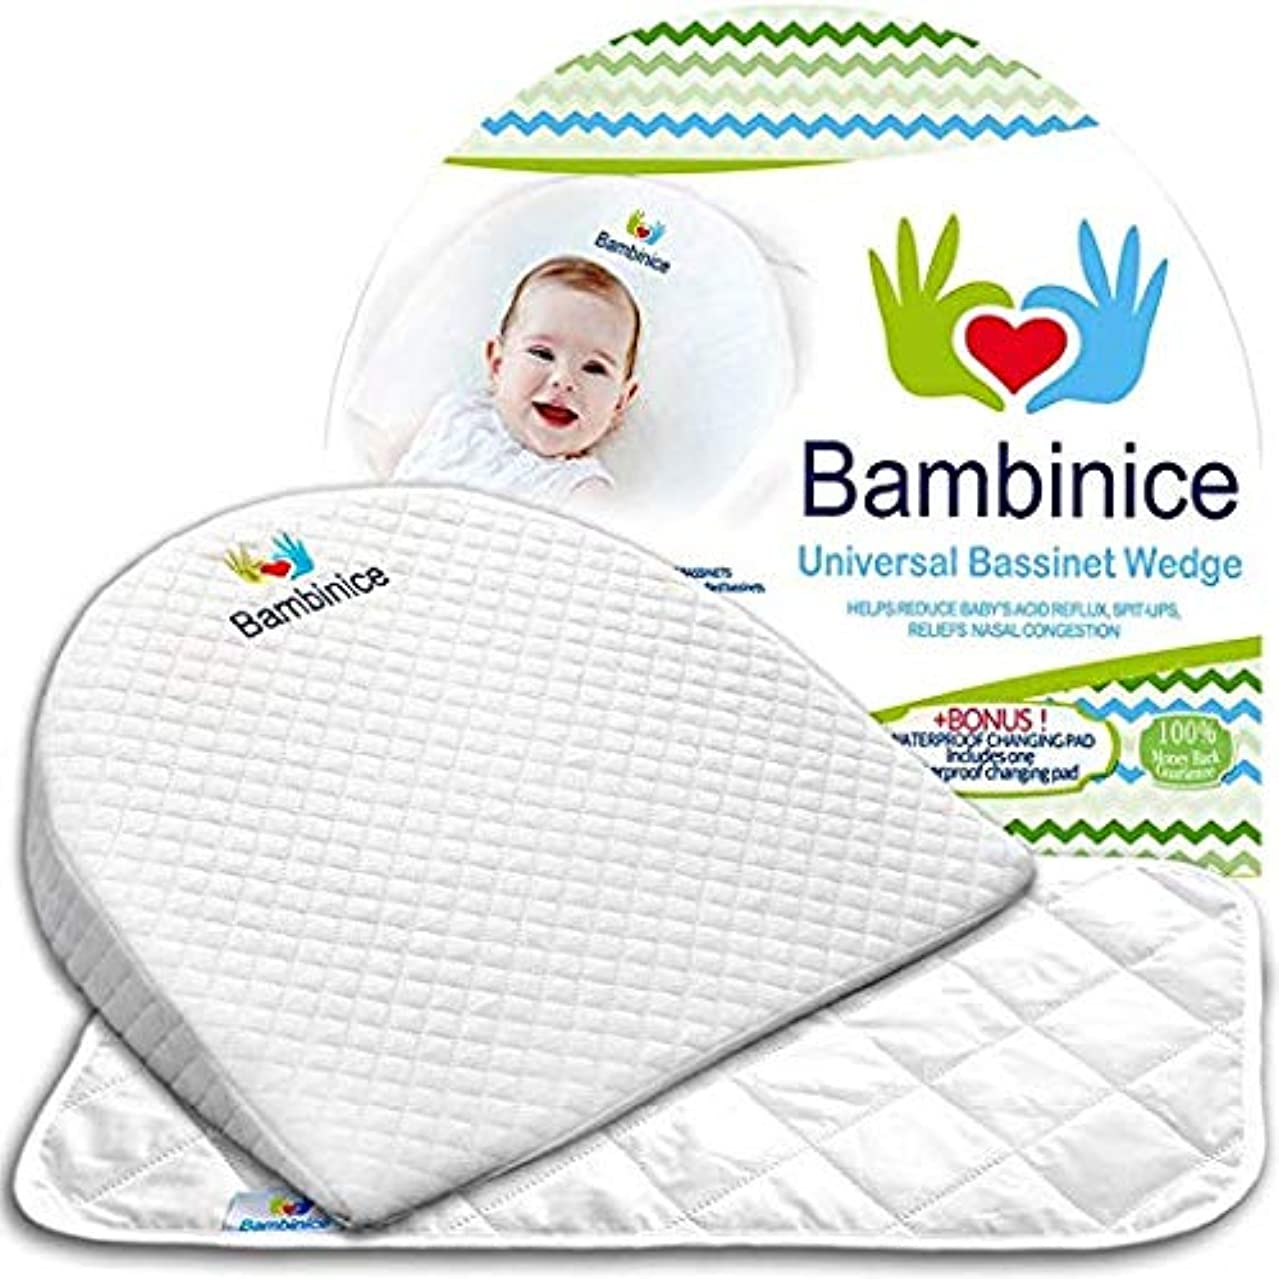 Bambinice Universal Bassinet Wedge - Infant Crib Pillow - Waterproof Changing Pad Liner – Portable Incline Cushion - Newborn Reflux and Nasal Congestion Reducer - Ebook - Perfect Baby Shower Gift